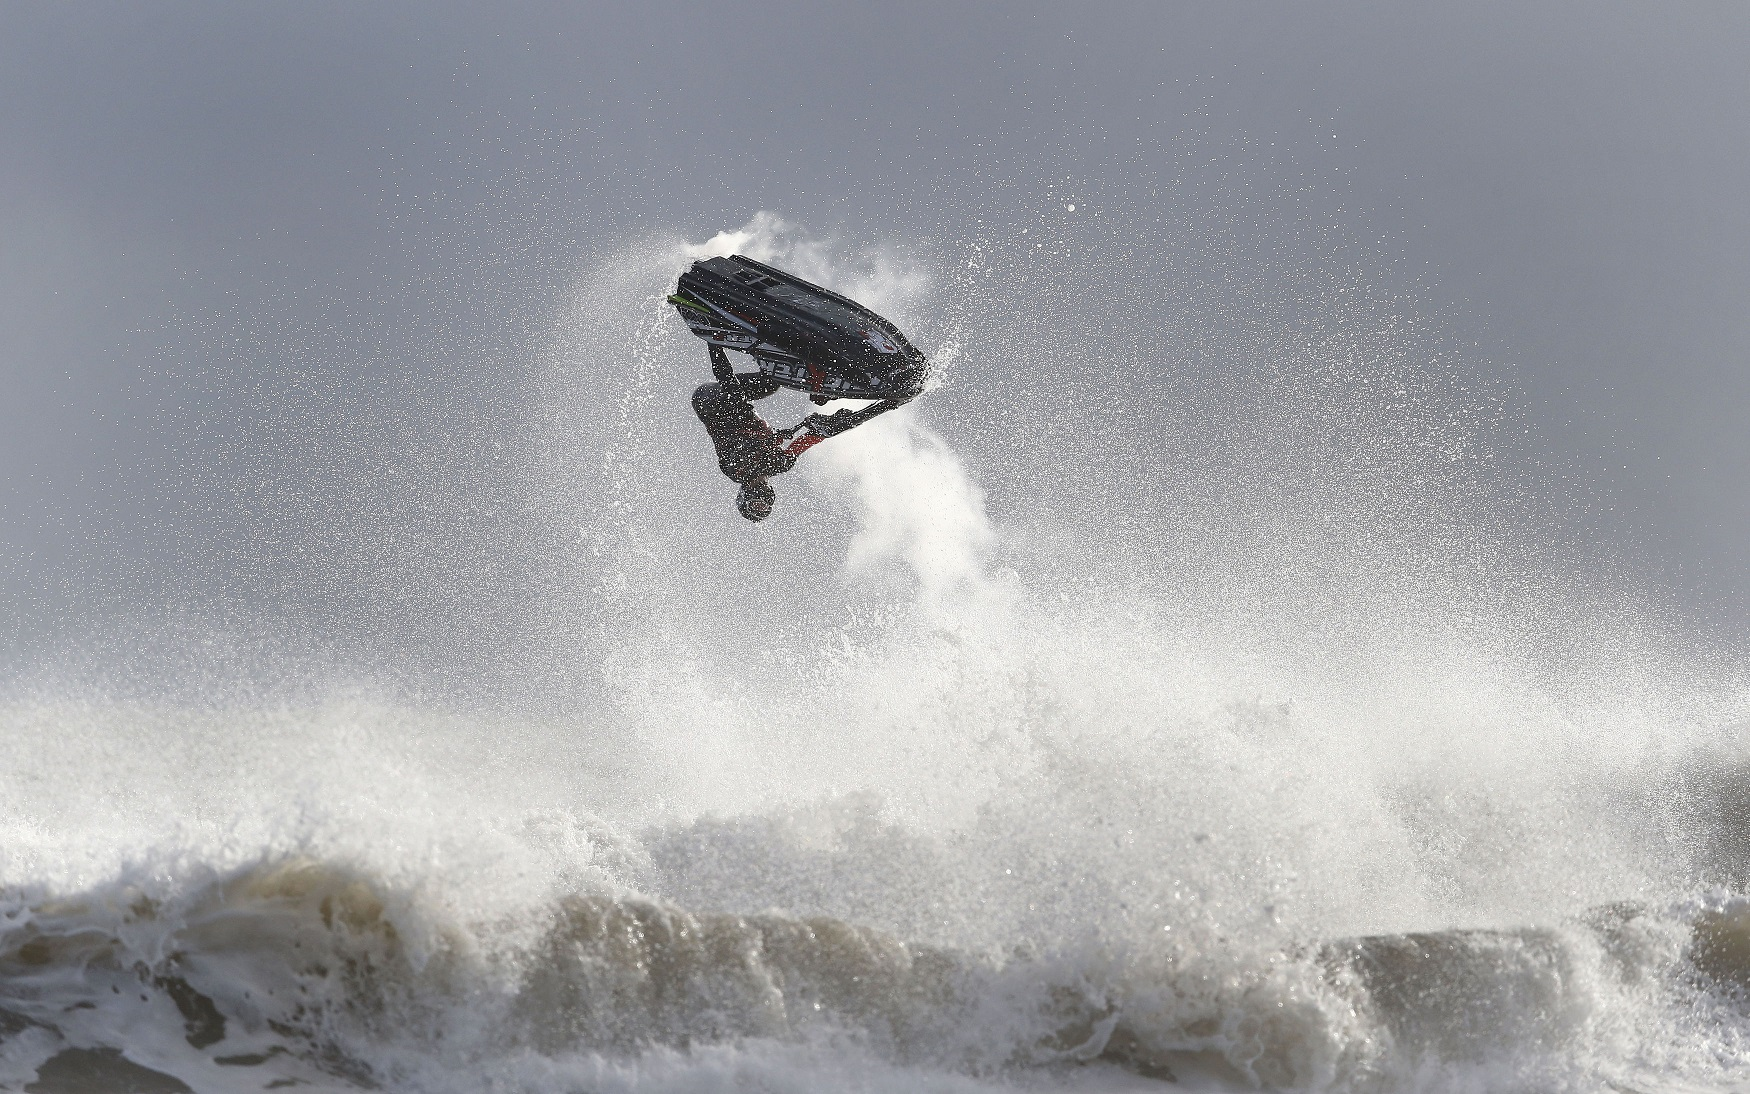 Слайд 22 из 86: A jet skier takes part in round one of the UK Battle of the Pilots jet ski championships, which took place at Blyth beach, Northumberland this weekend.